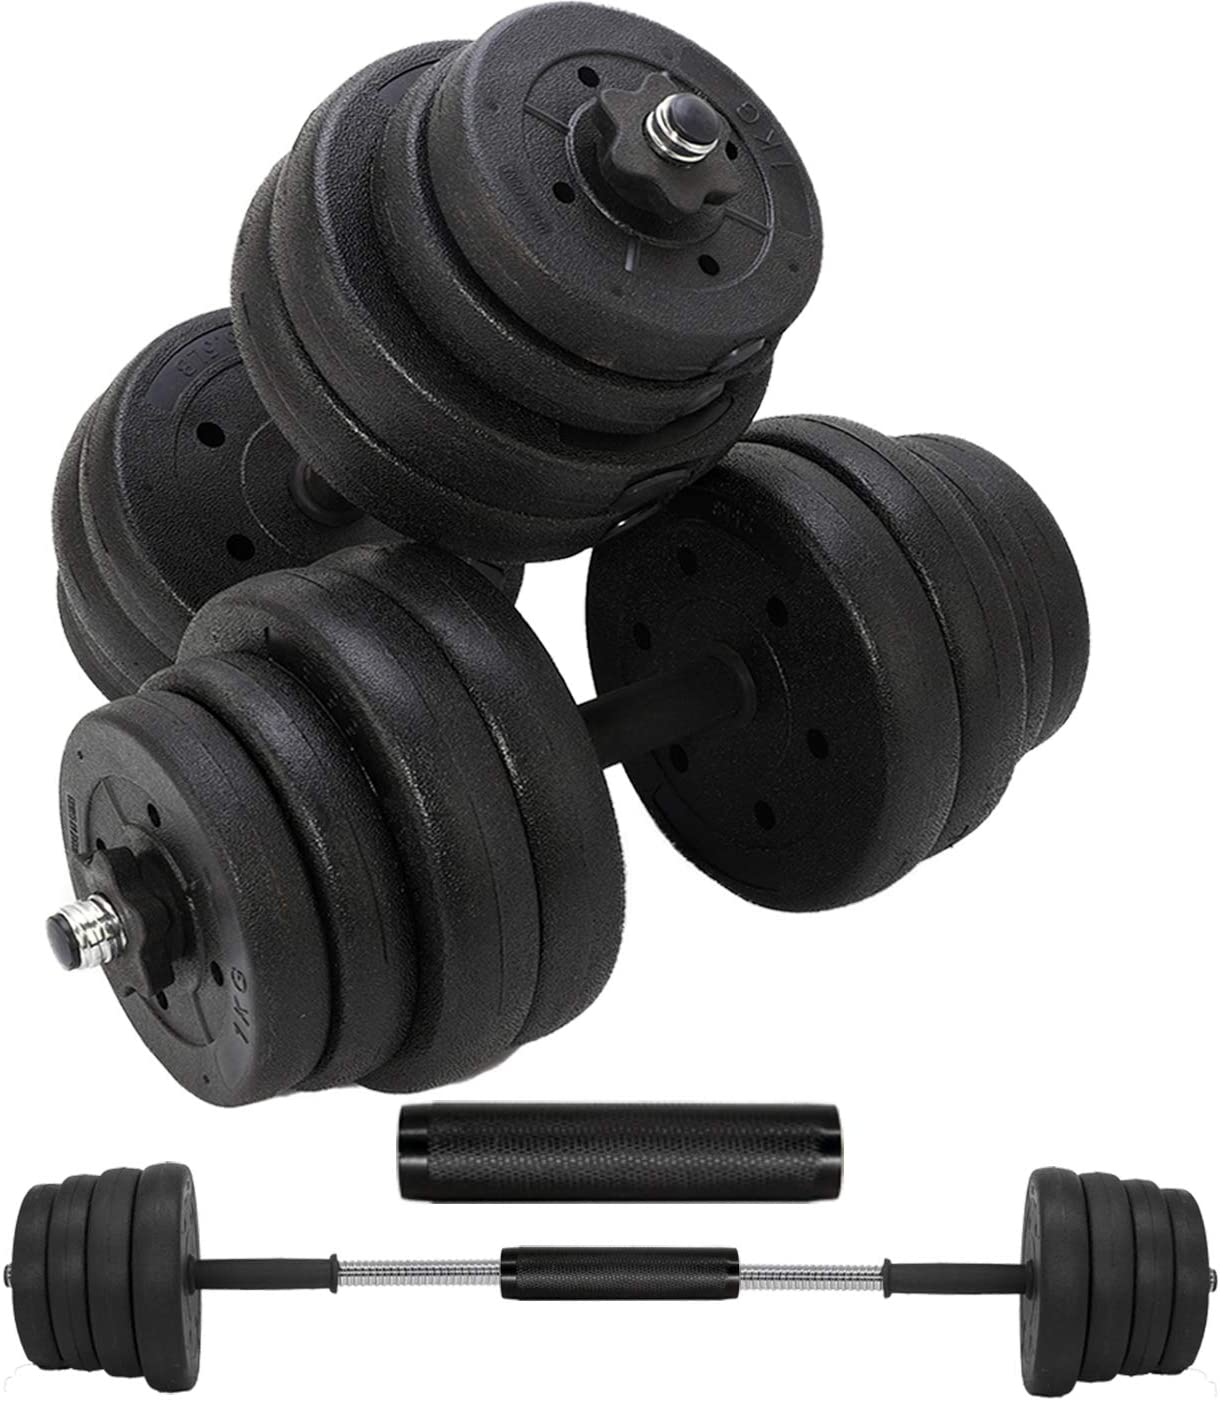 Details about  /GYM Adjustable Dumbbell Set 66 88 110lb Weight Barbell Plates Home Workout